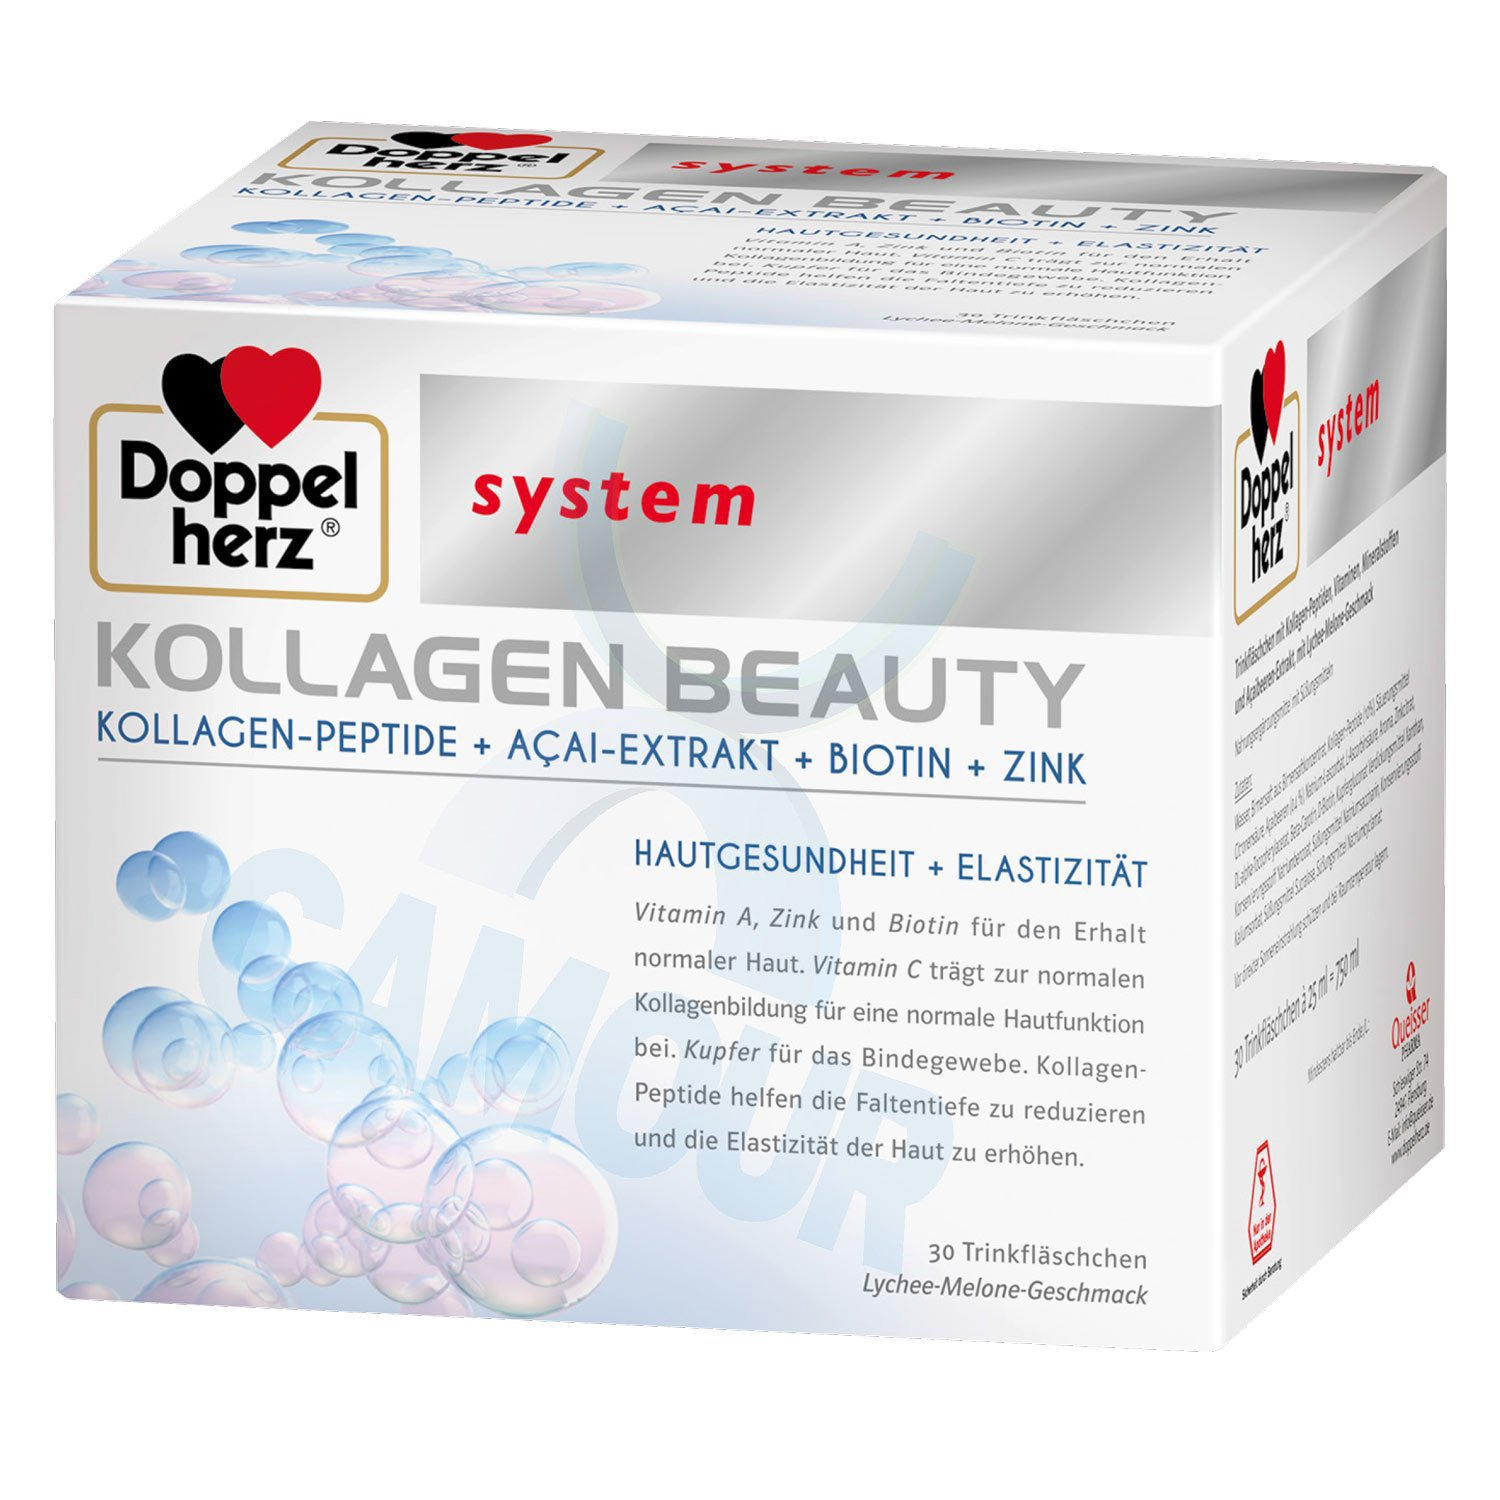 Doppelherz Kollagen Collagen Beauty System Zinc Biotin Skin Health 30 x 25ml